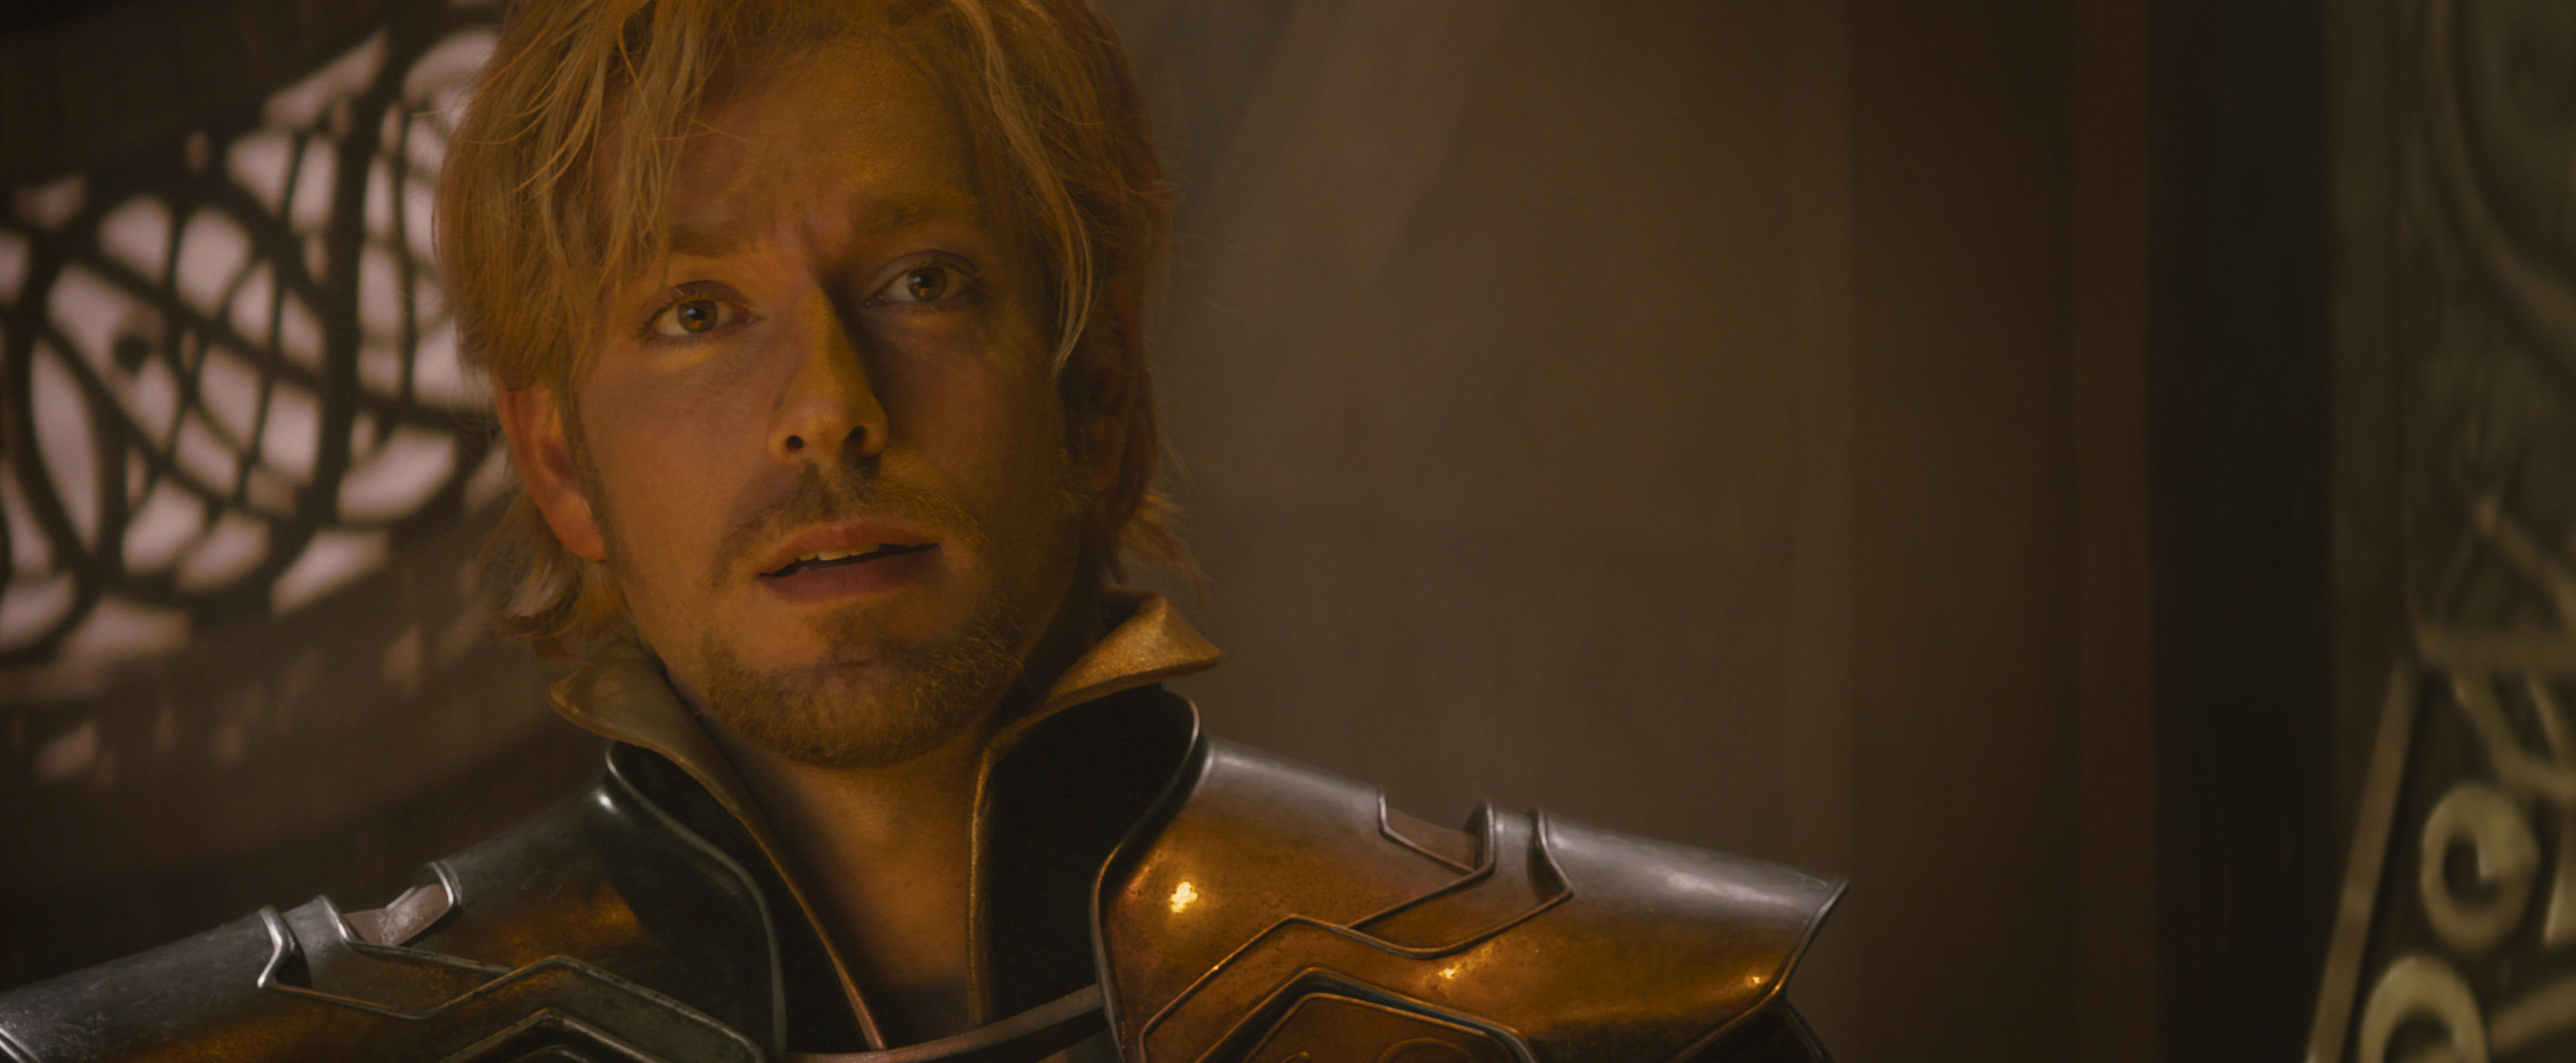 Zachary Levi as Fandral in